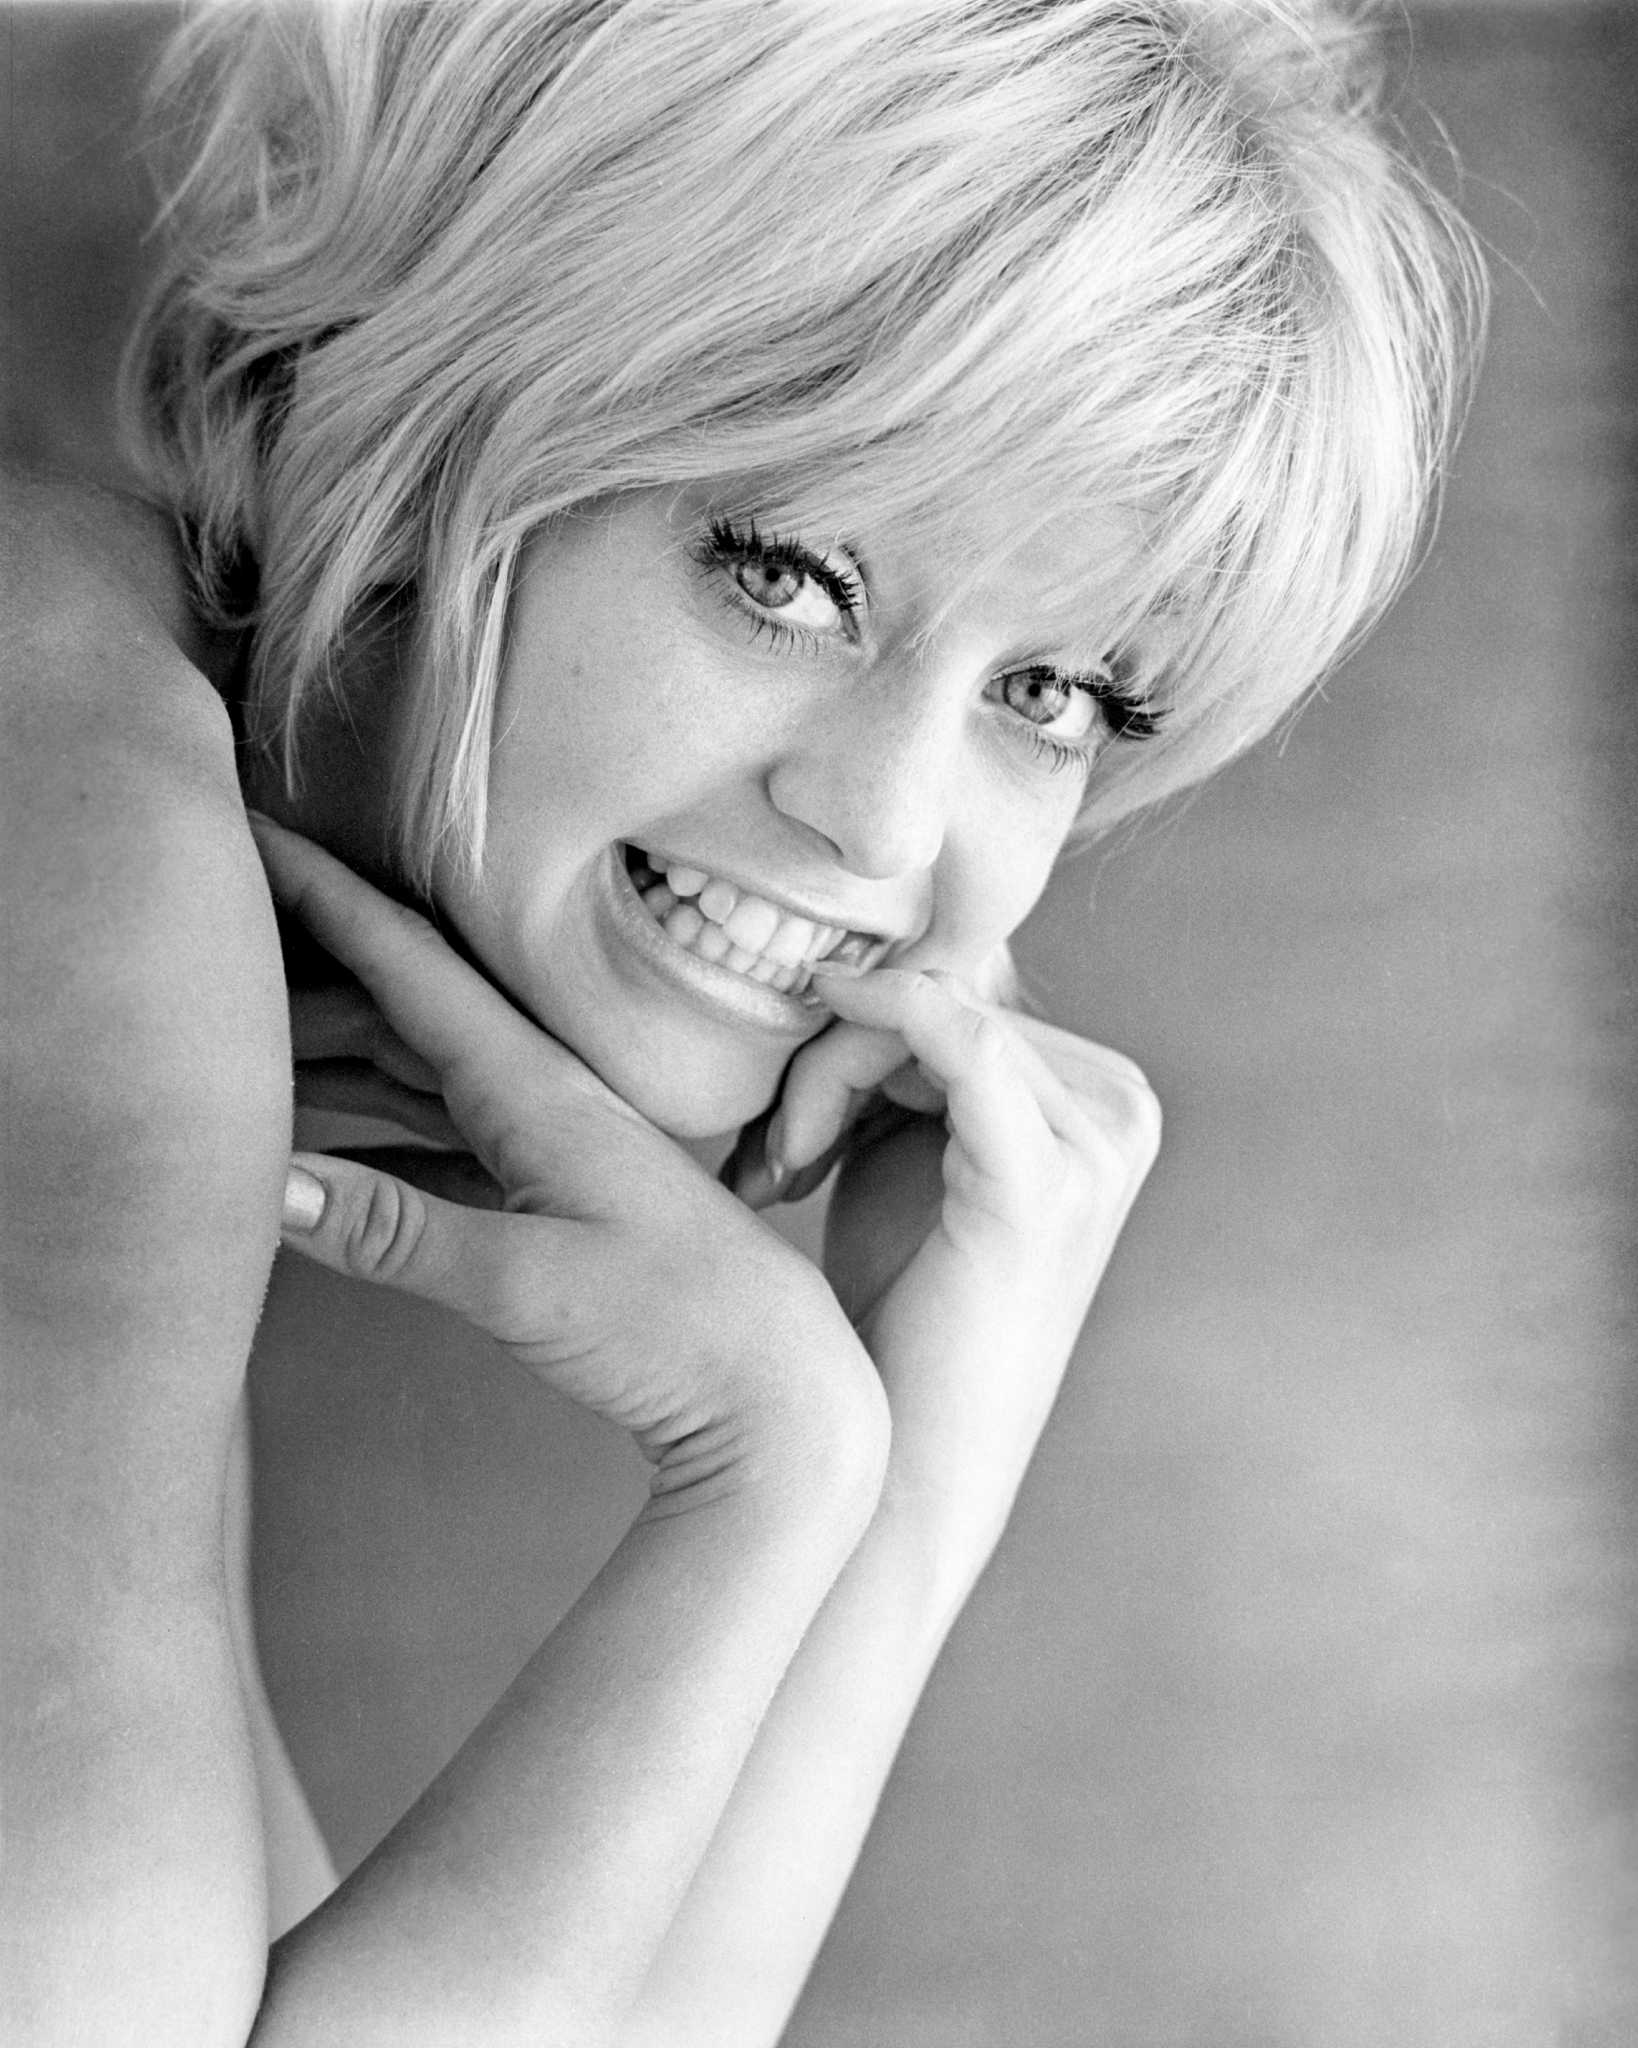 goldie hawn celebrates her 72nd birthday  smile still shines